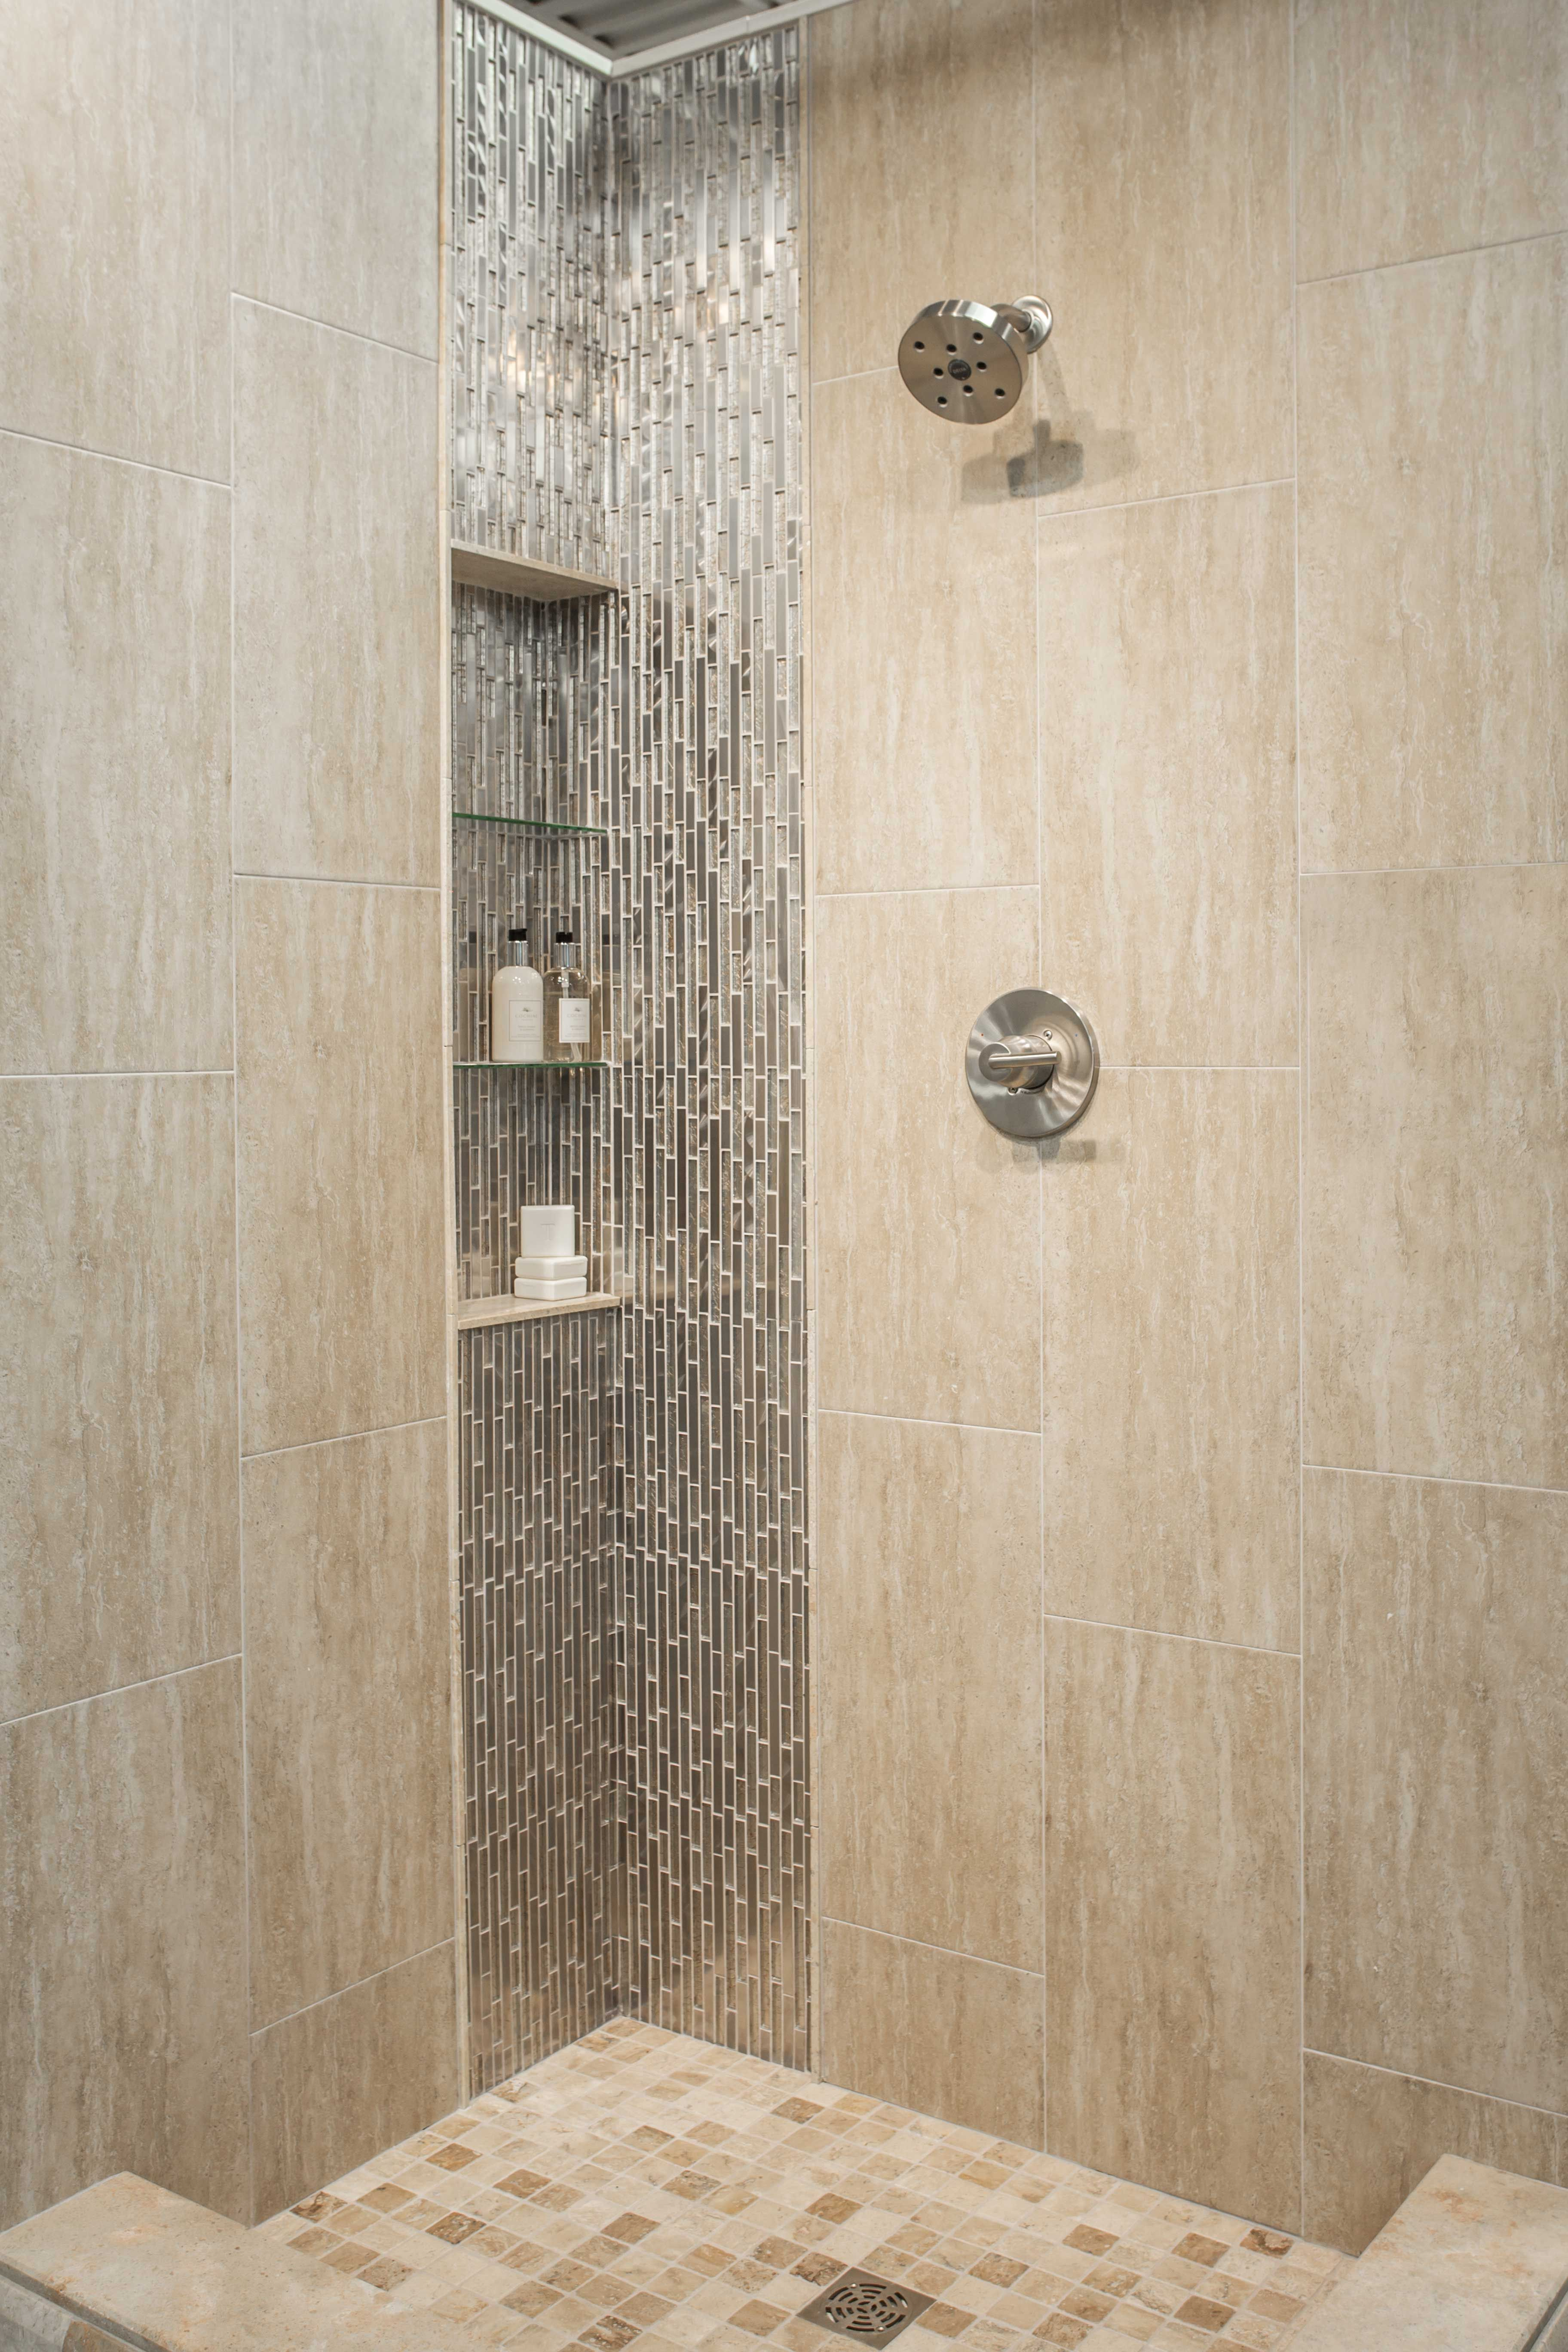 Bathroom shower wall tile classico beige porcelain wall for Bathroom wall remodel ideas